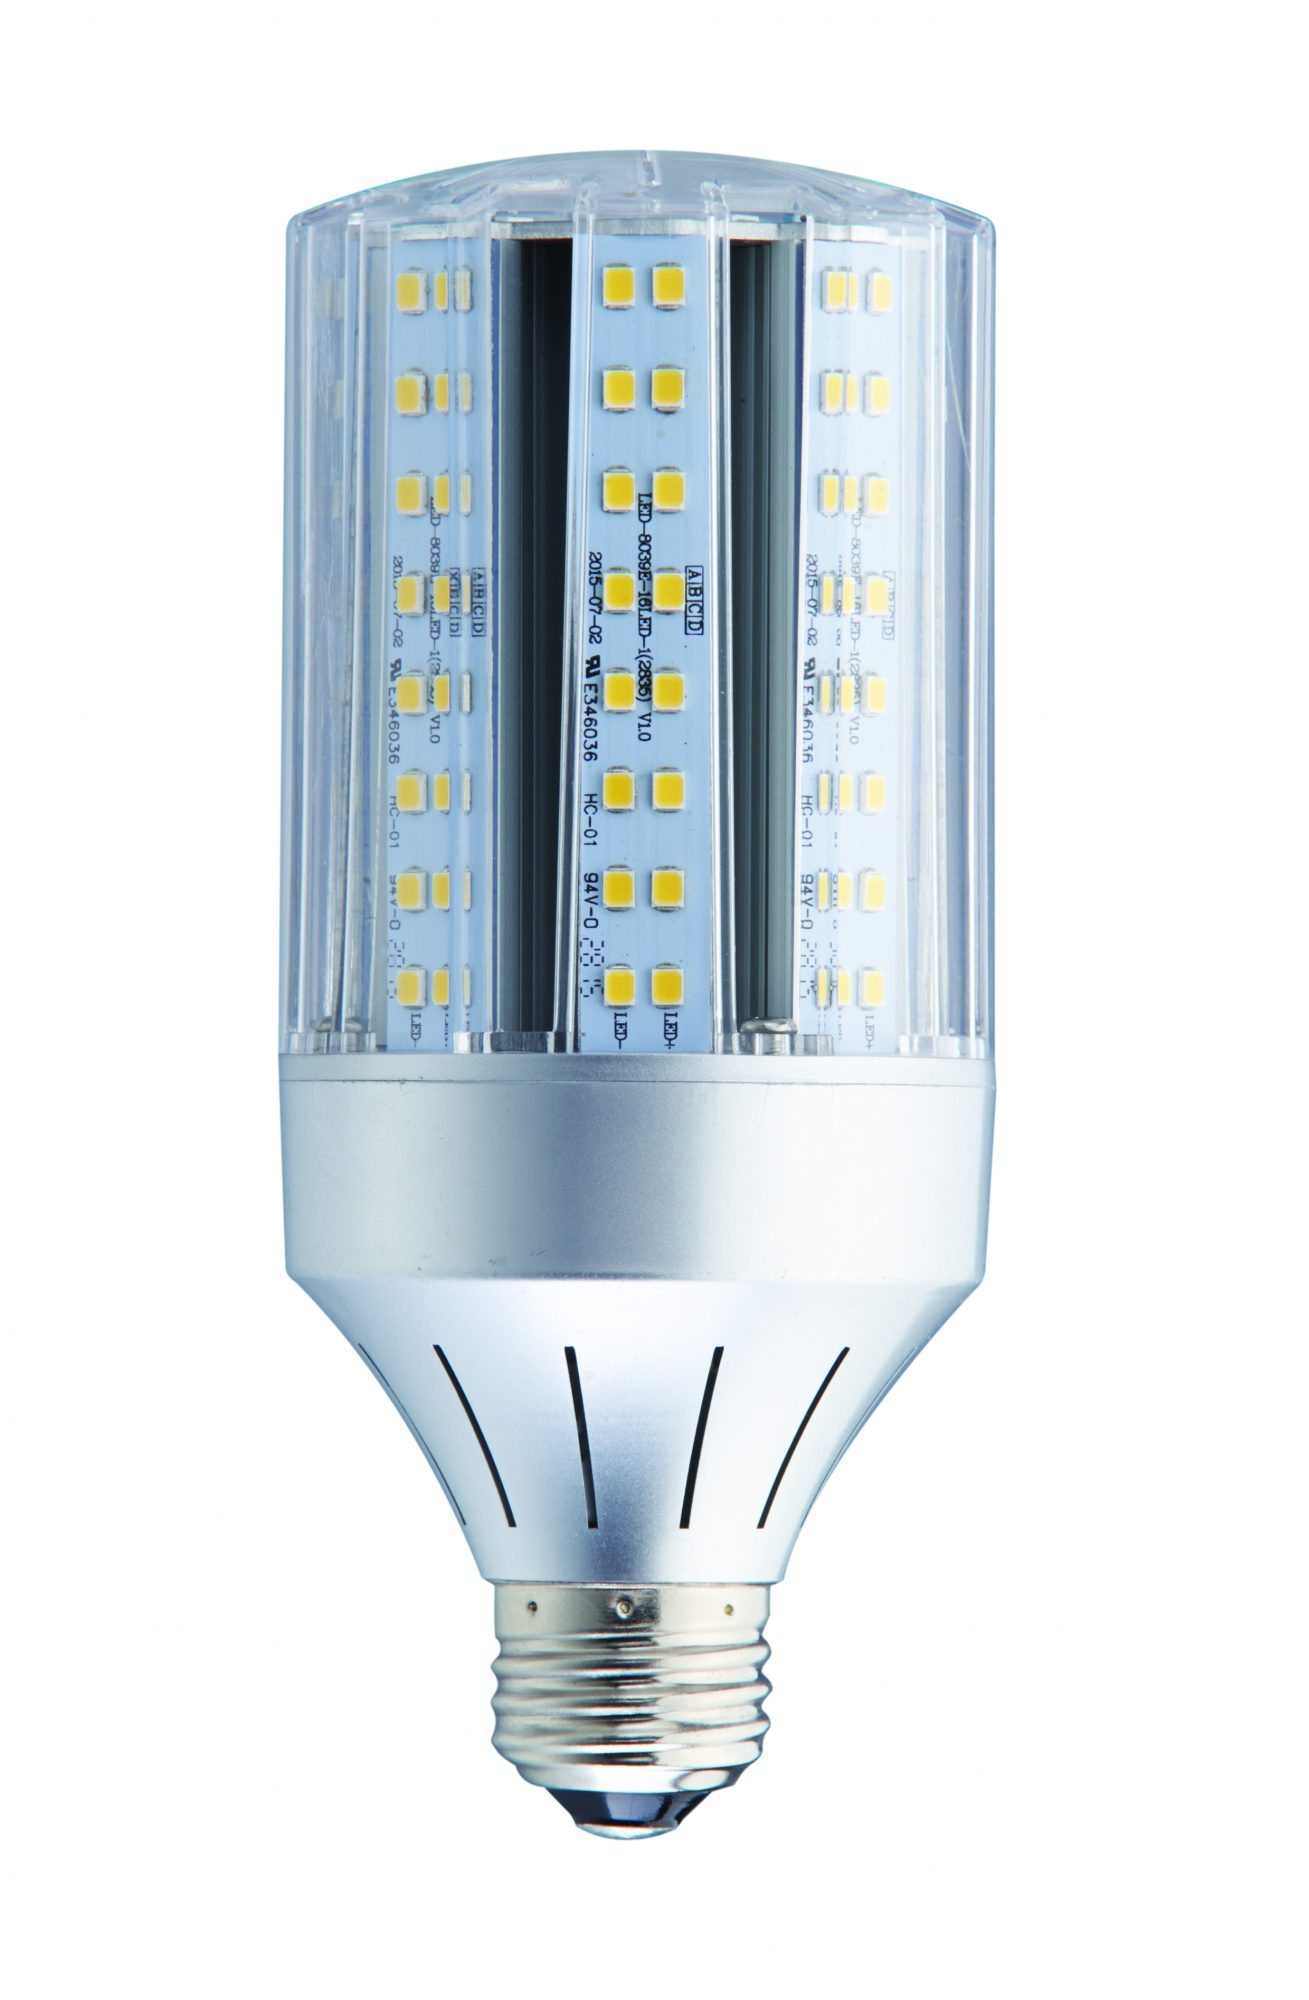 Elegant Light Efficient Design Has Announced The LED 8038 14W And LED 8039 18W Low  Wattage Retrofit Lighting Solutions For Fast, Non Invasive Replacement Of  50W And ...